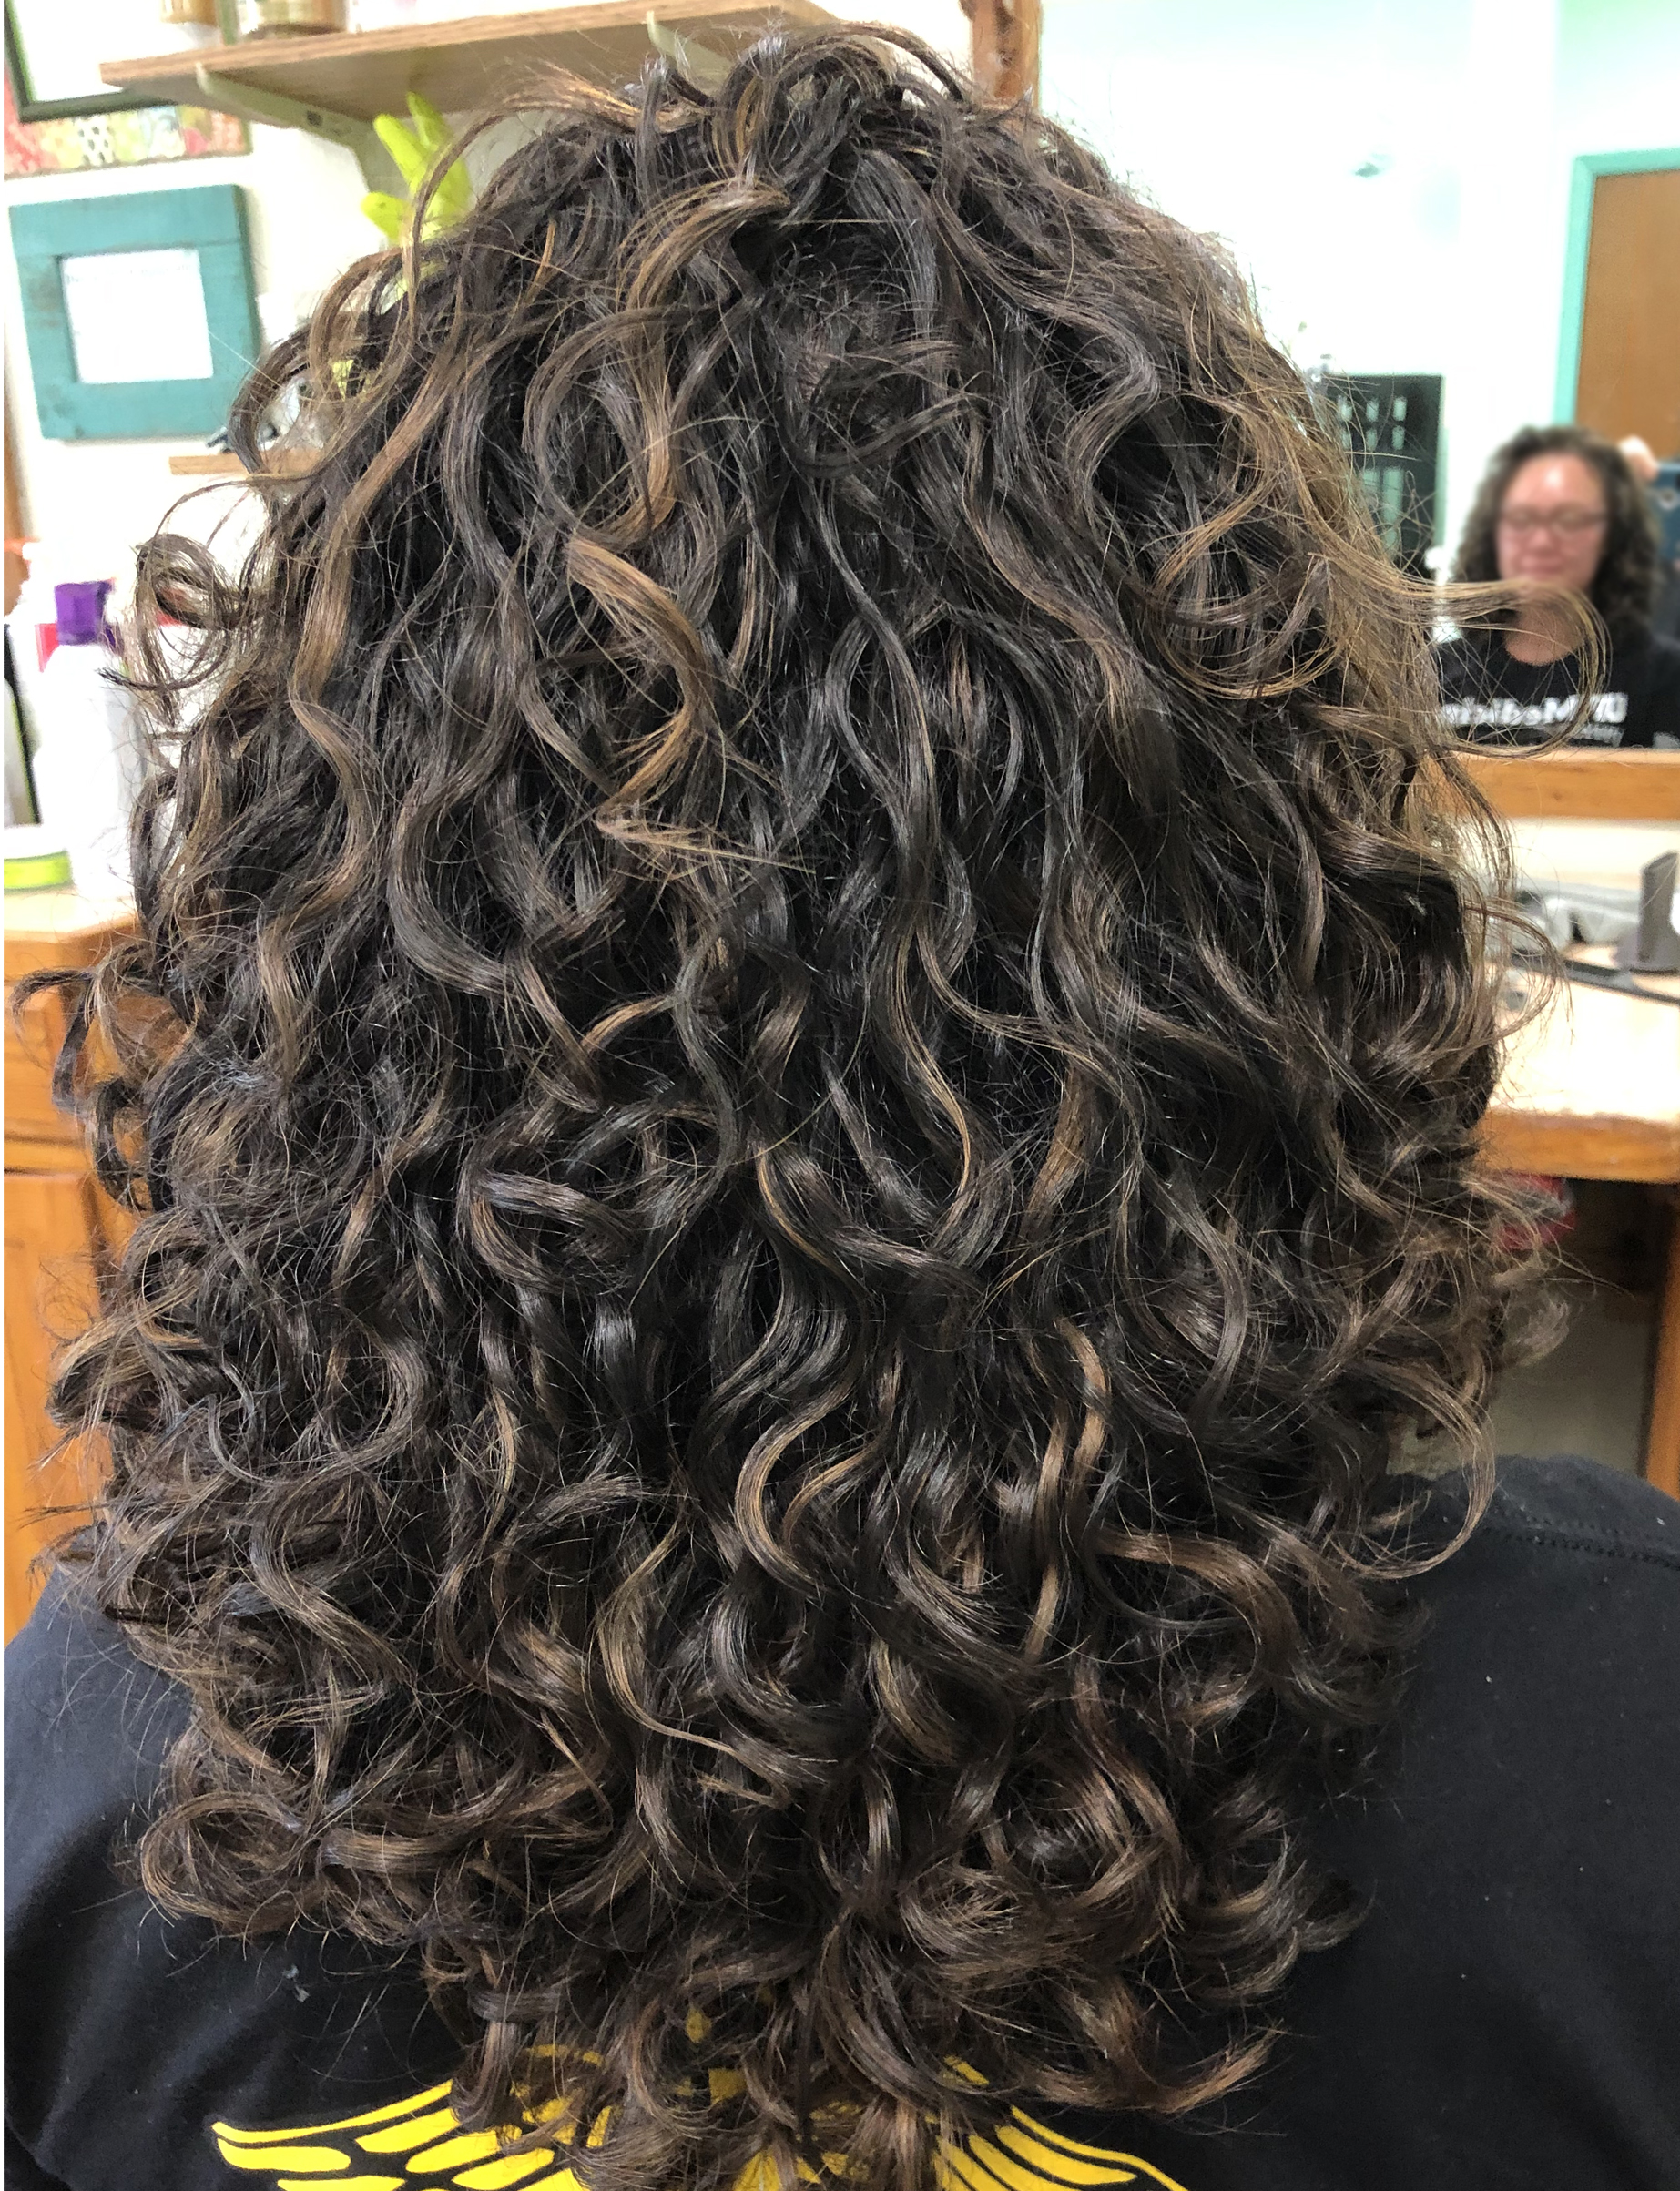 Curls by Keiko - Home